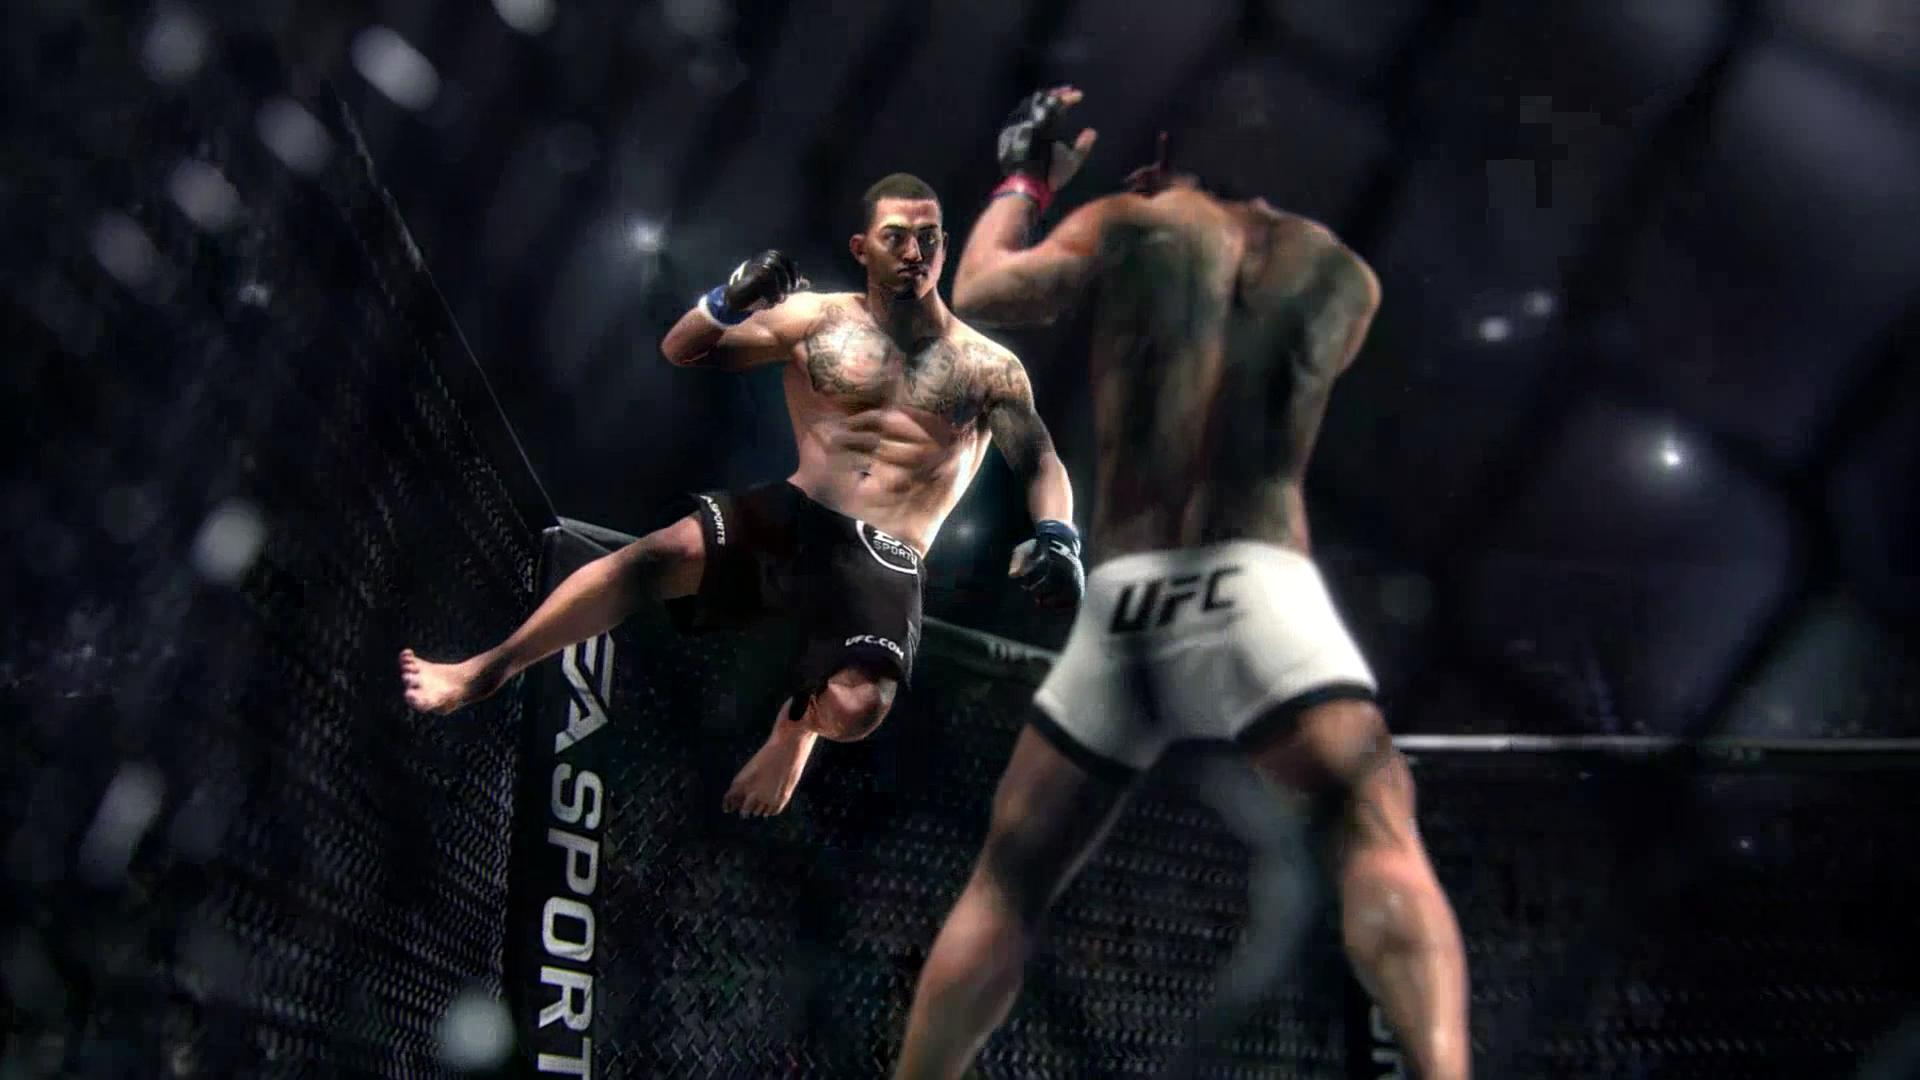 Ufc sport wallpapers wallpaper cave ufc wallpapers group 63 voltagebd Image collections